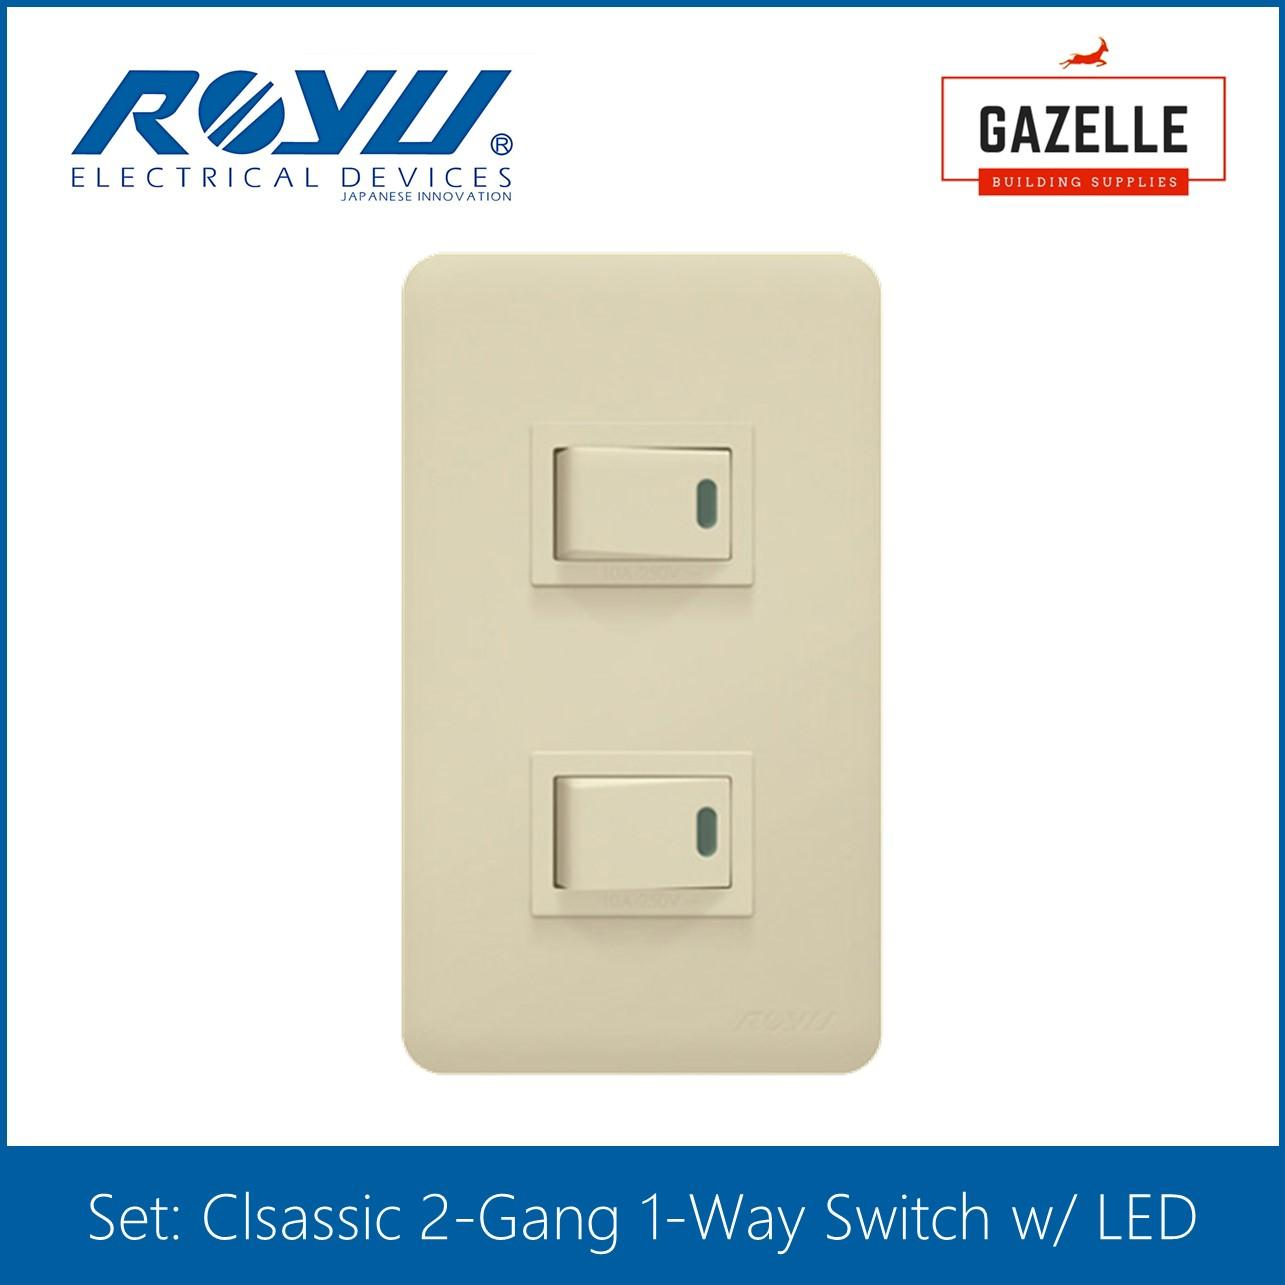 1 box royu thhn stranded wire 8 0mm black philippines price specs royu classic series 2 gang 1 way switch w led greentooth Image collections